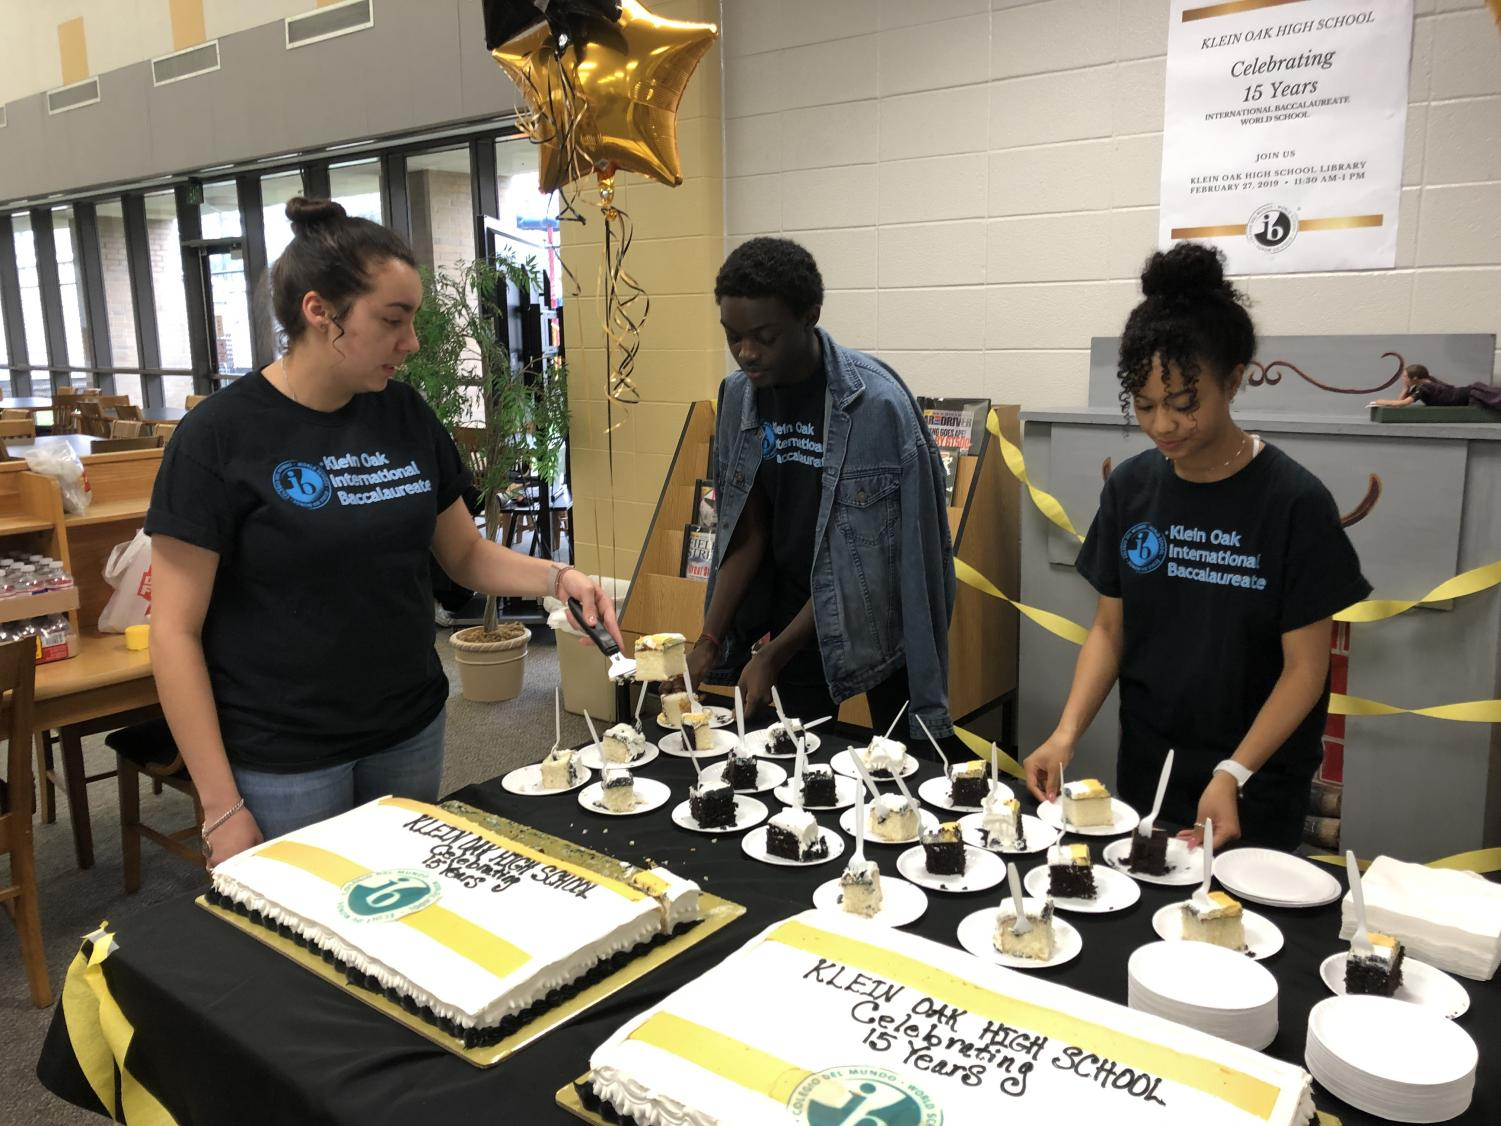 Franchesca Esquivel, Kwame Ofori, and Tatyana Ranson serve cake during the IB Anniversary Celebration in the library.